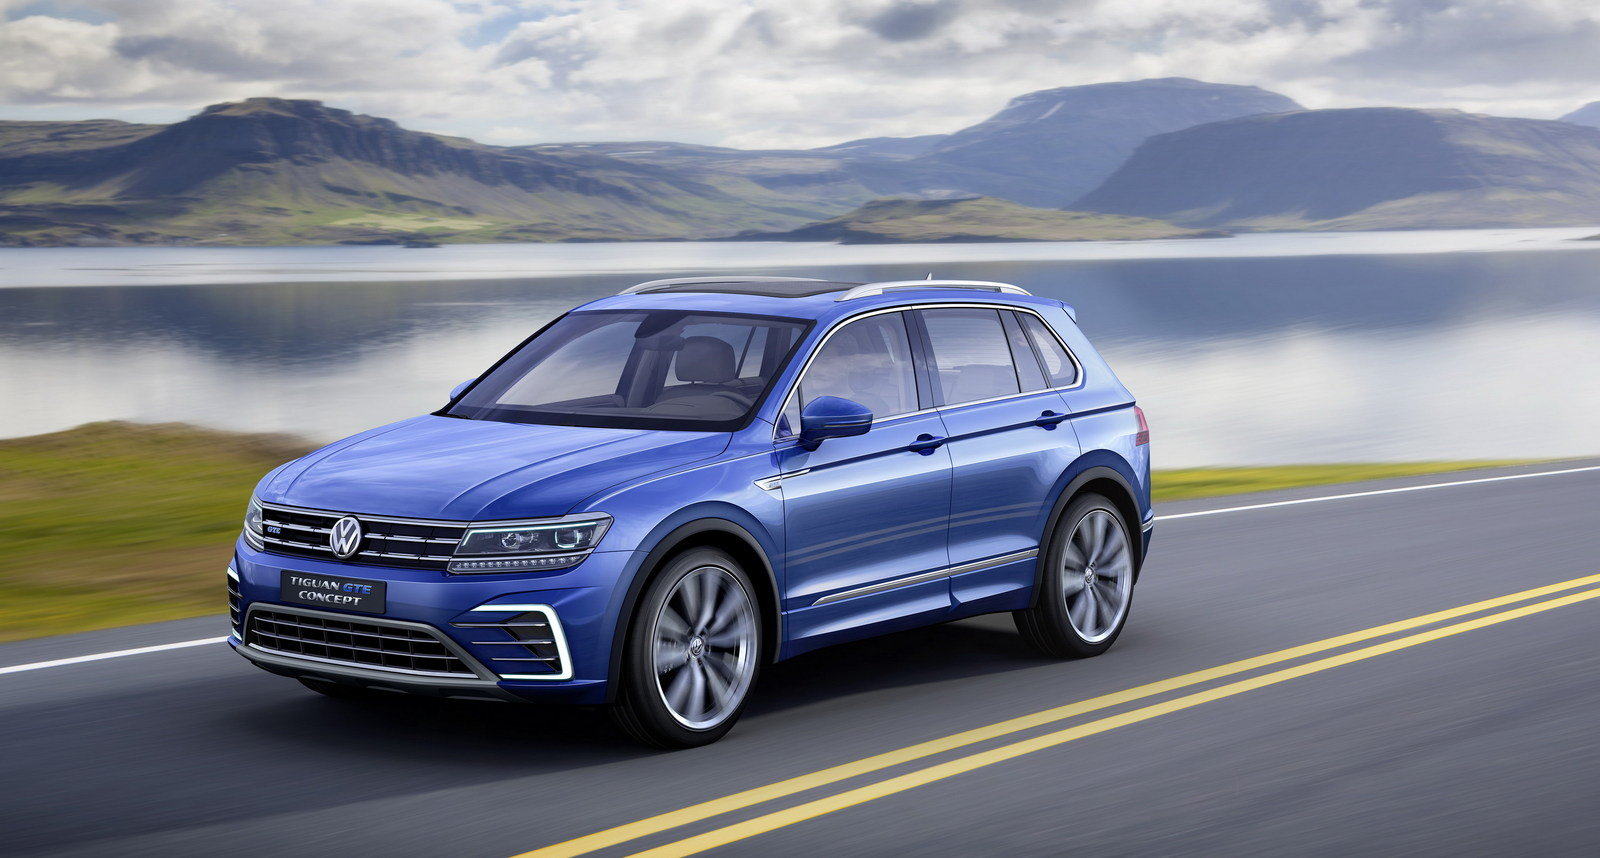 2016 volkswagen tiguan gte picture 645801 car review top speed. Black Bedroom Furniture Sets. Home Design Ideas